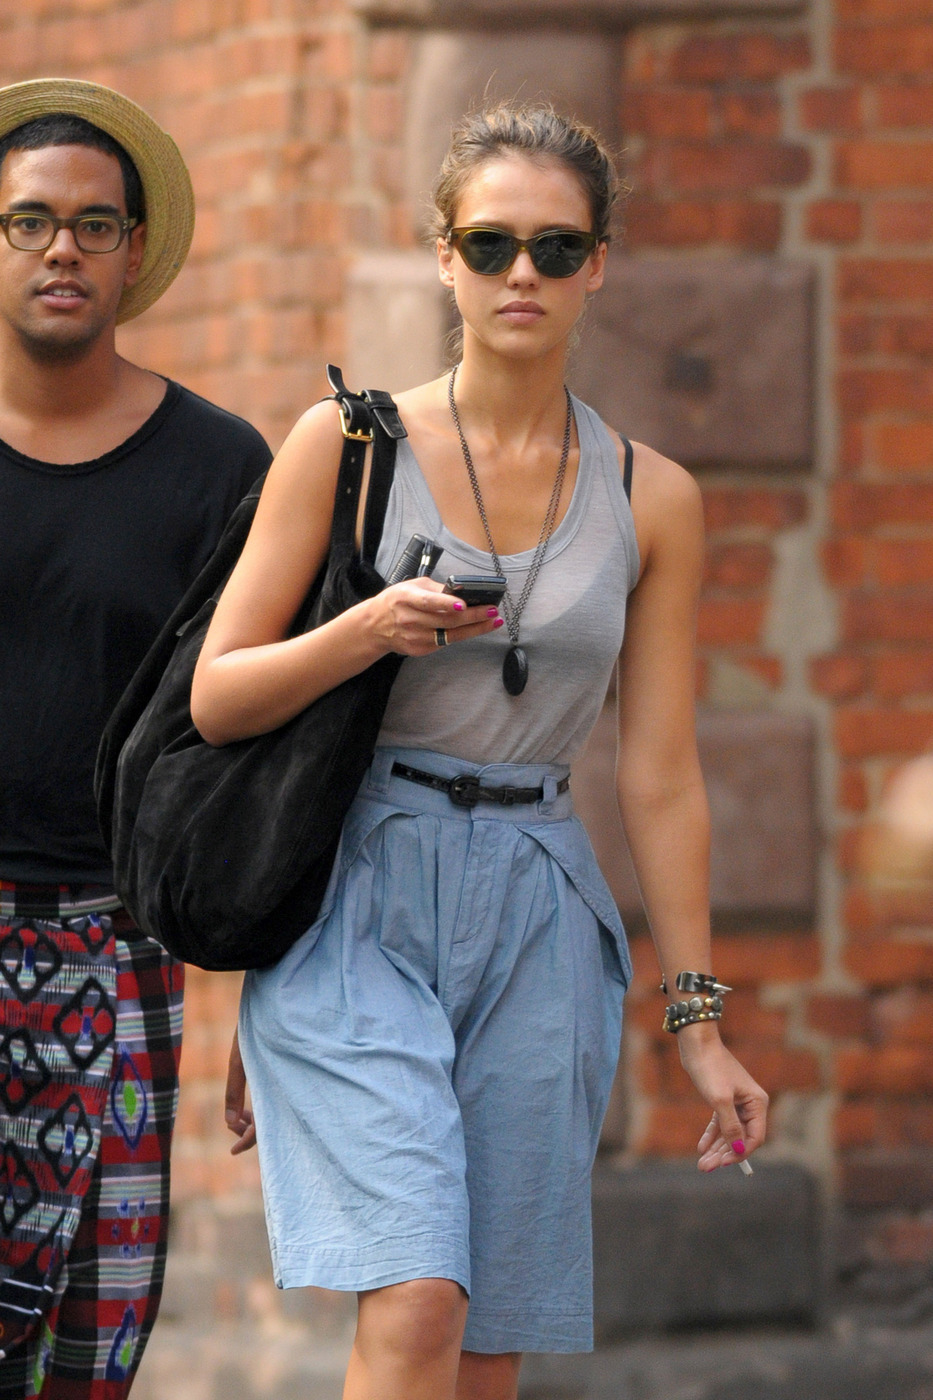 CELEB SMOKERS: Jessica Alba holds a cell phone in one hand a cigarette in the other while out shopping with a friend in Soho